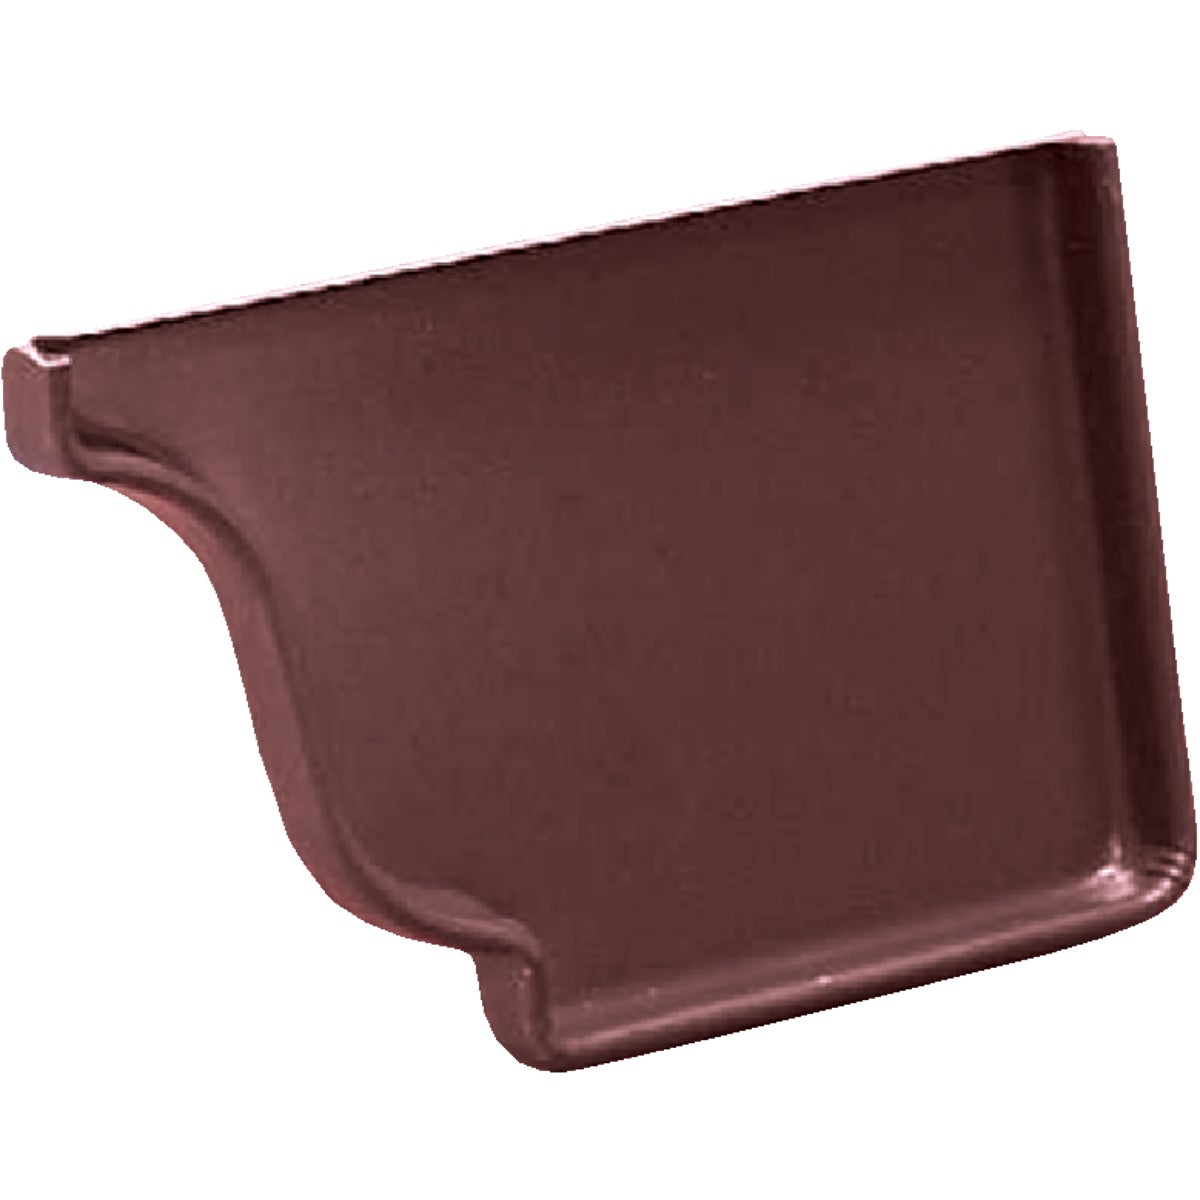 BROWN RIGHT END CAP - 3320619 by Amerimax Home Prod